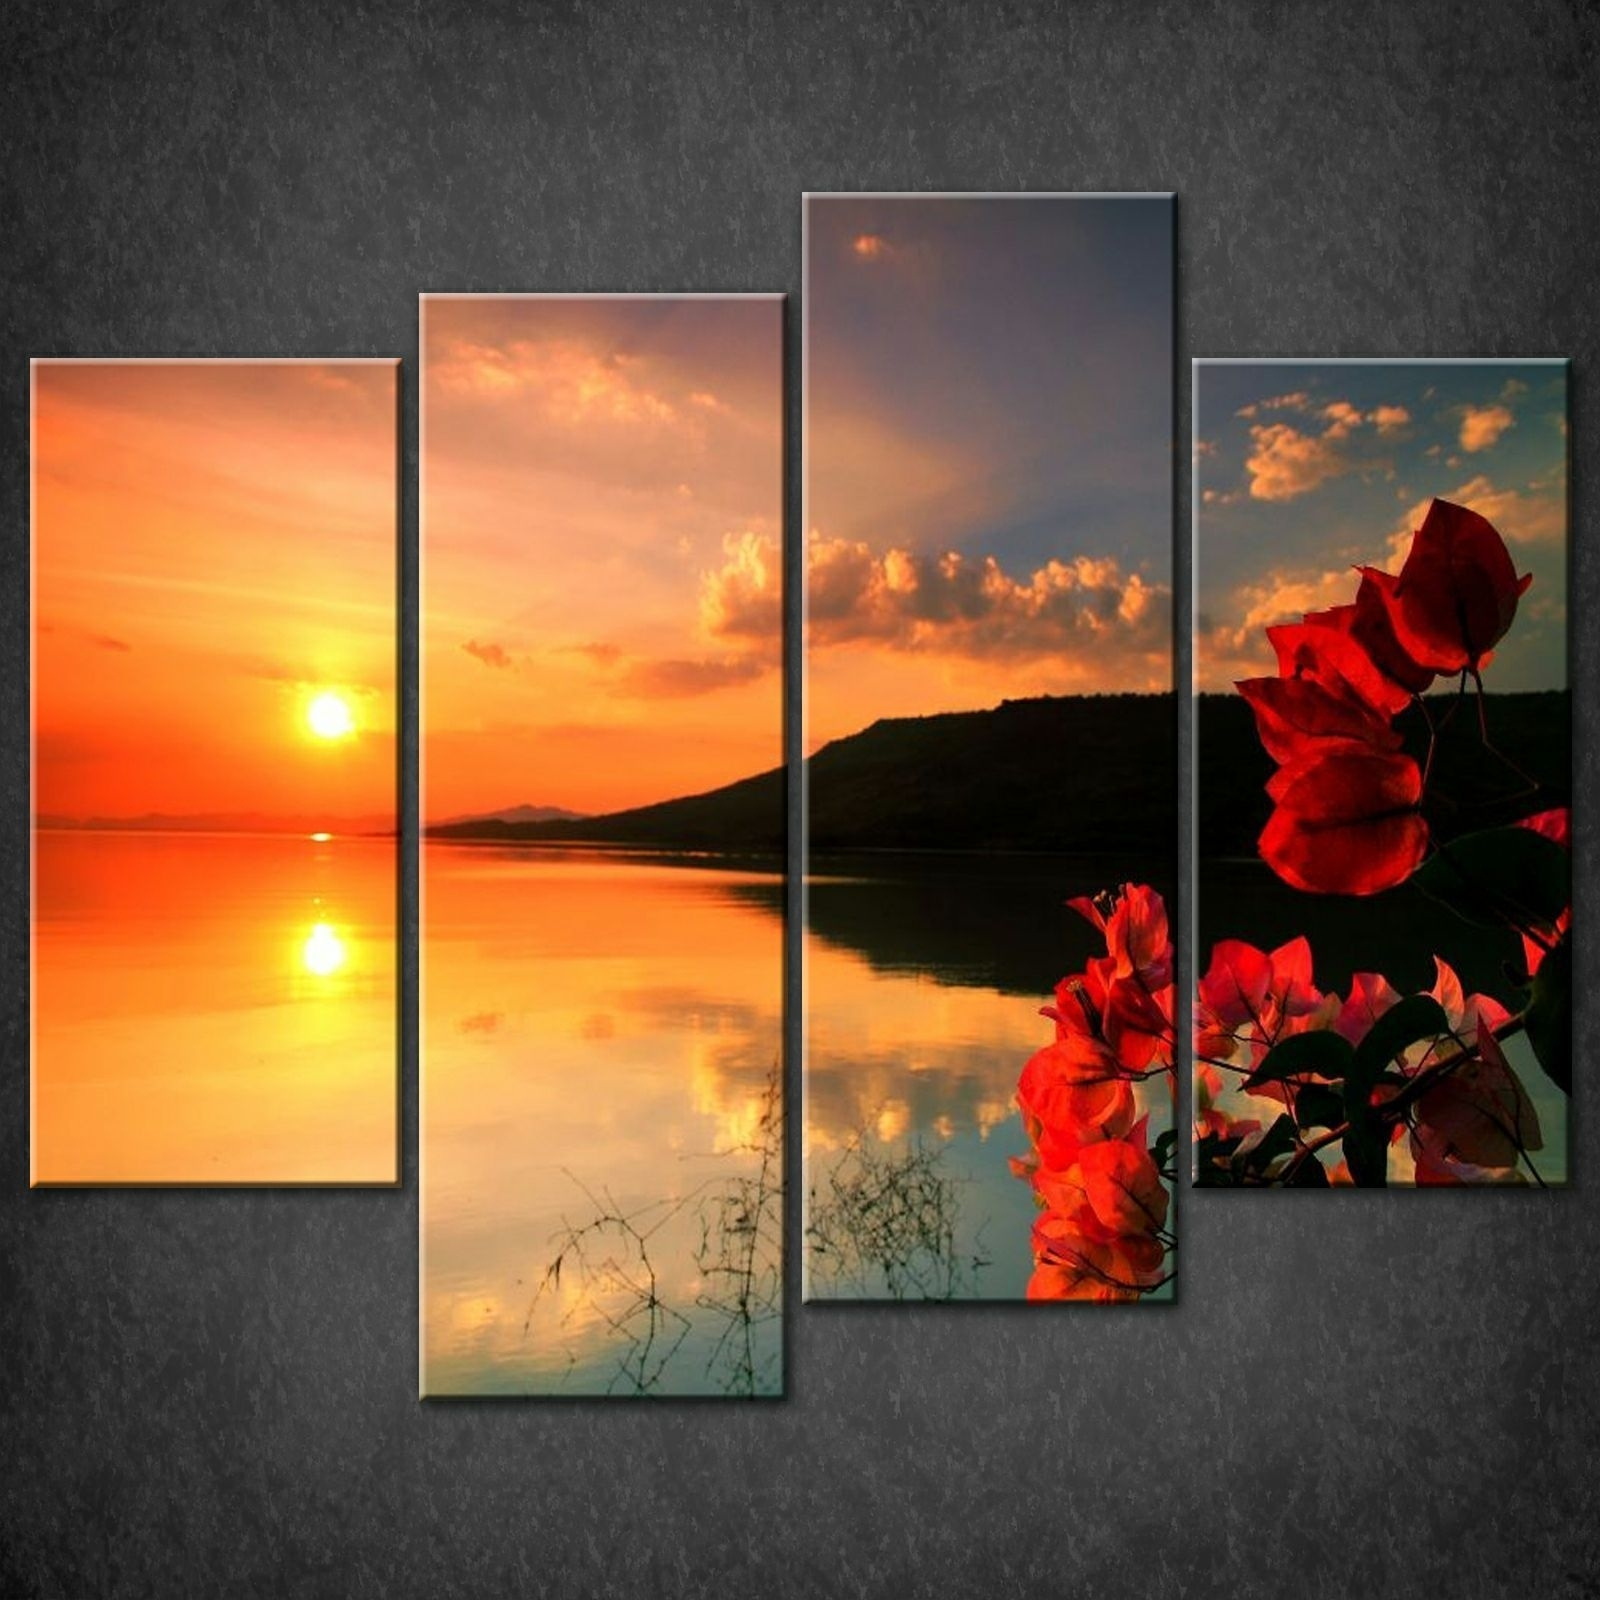 Red Calm Sunset Split Canvas Print Picture Wall Art Within Most Up To Date Wall Canvas Art (View 14 of 15)